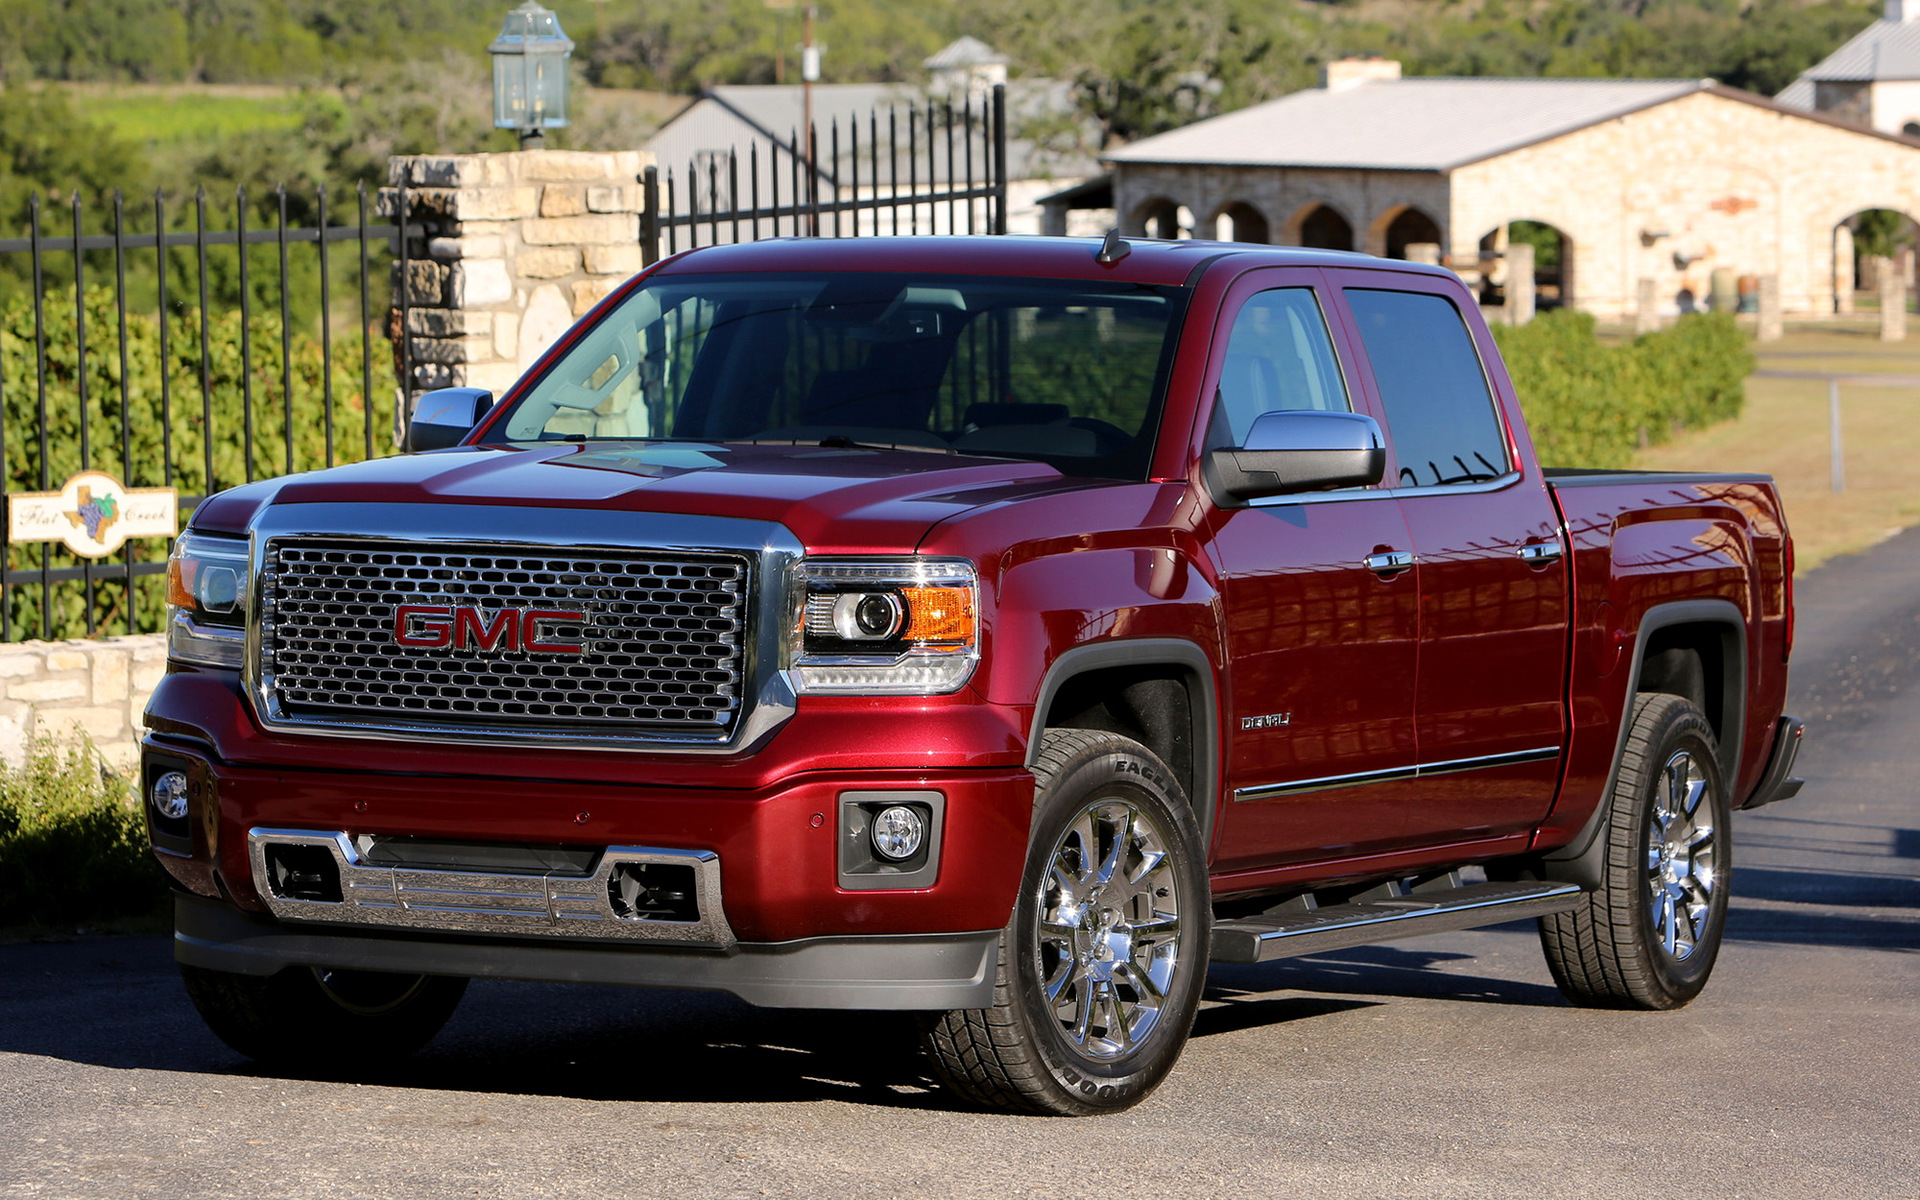 2017 GMC Sierra Hybrid Crew Cab photo - 3